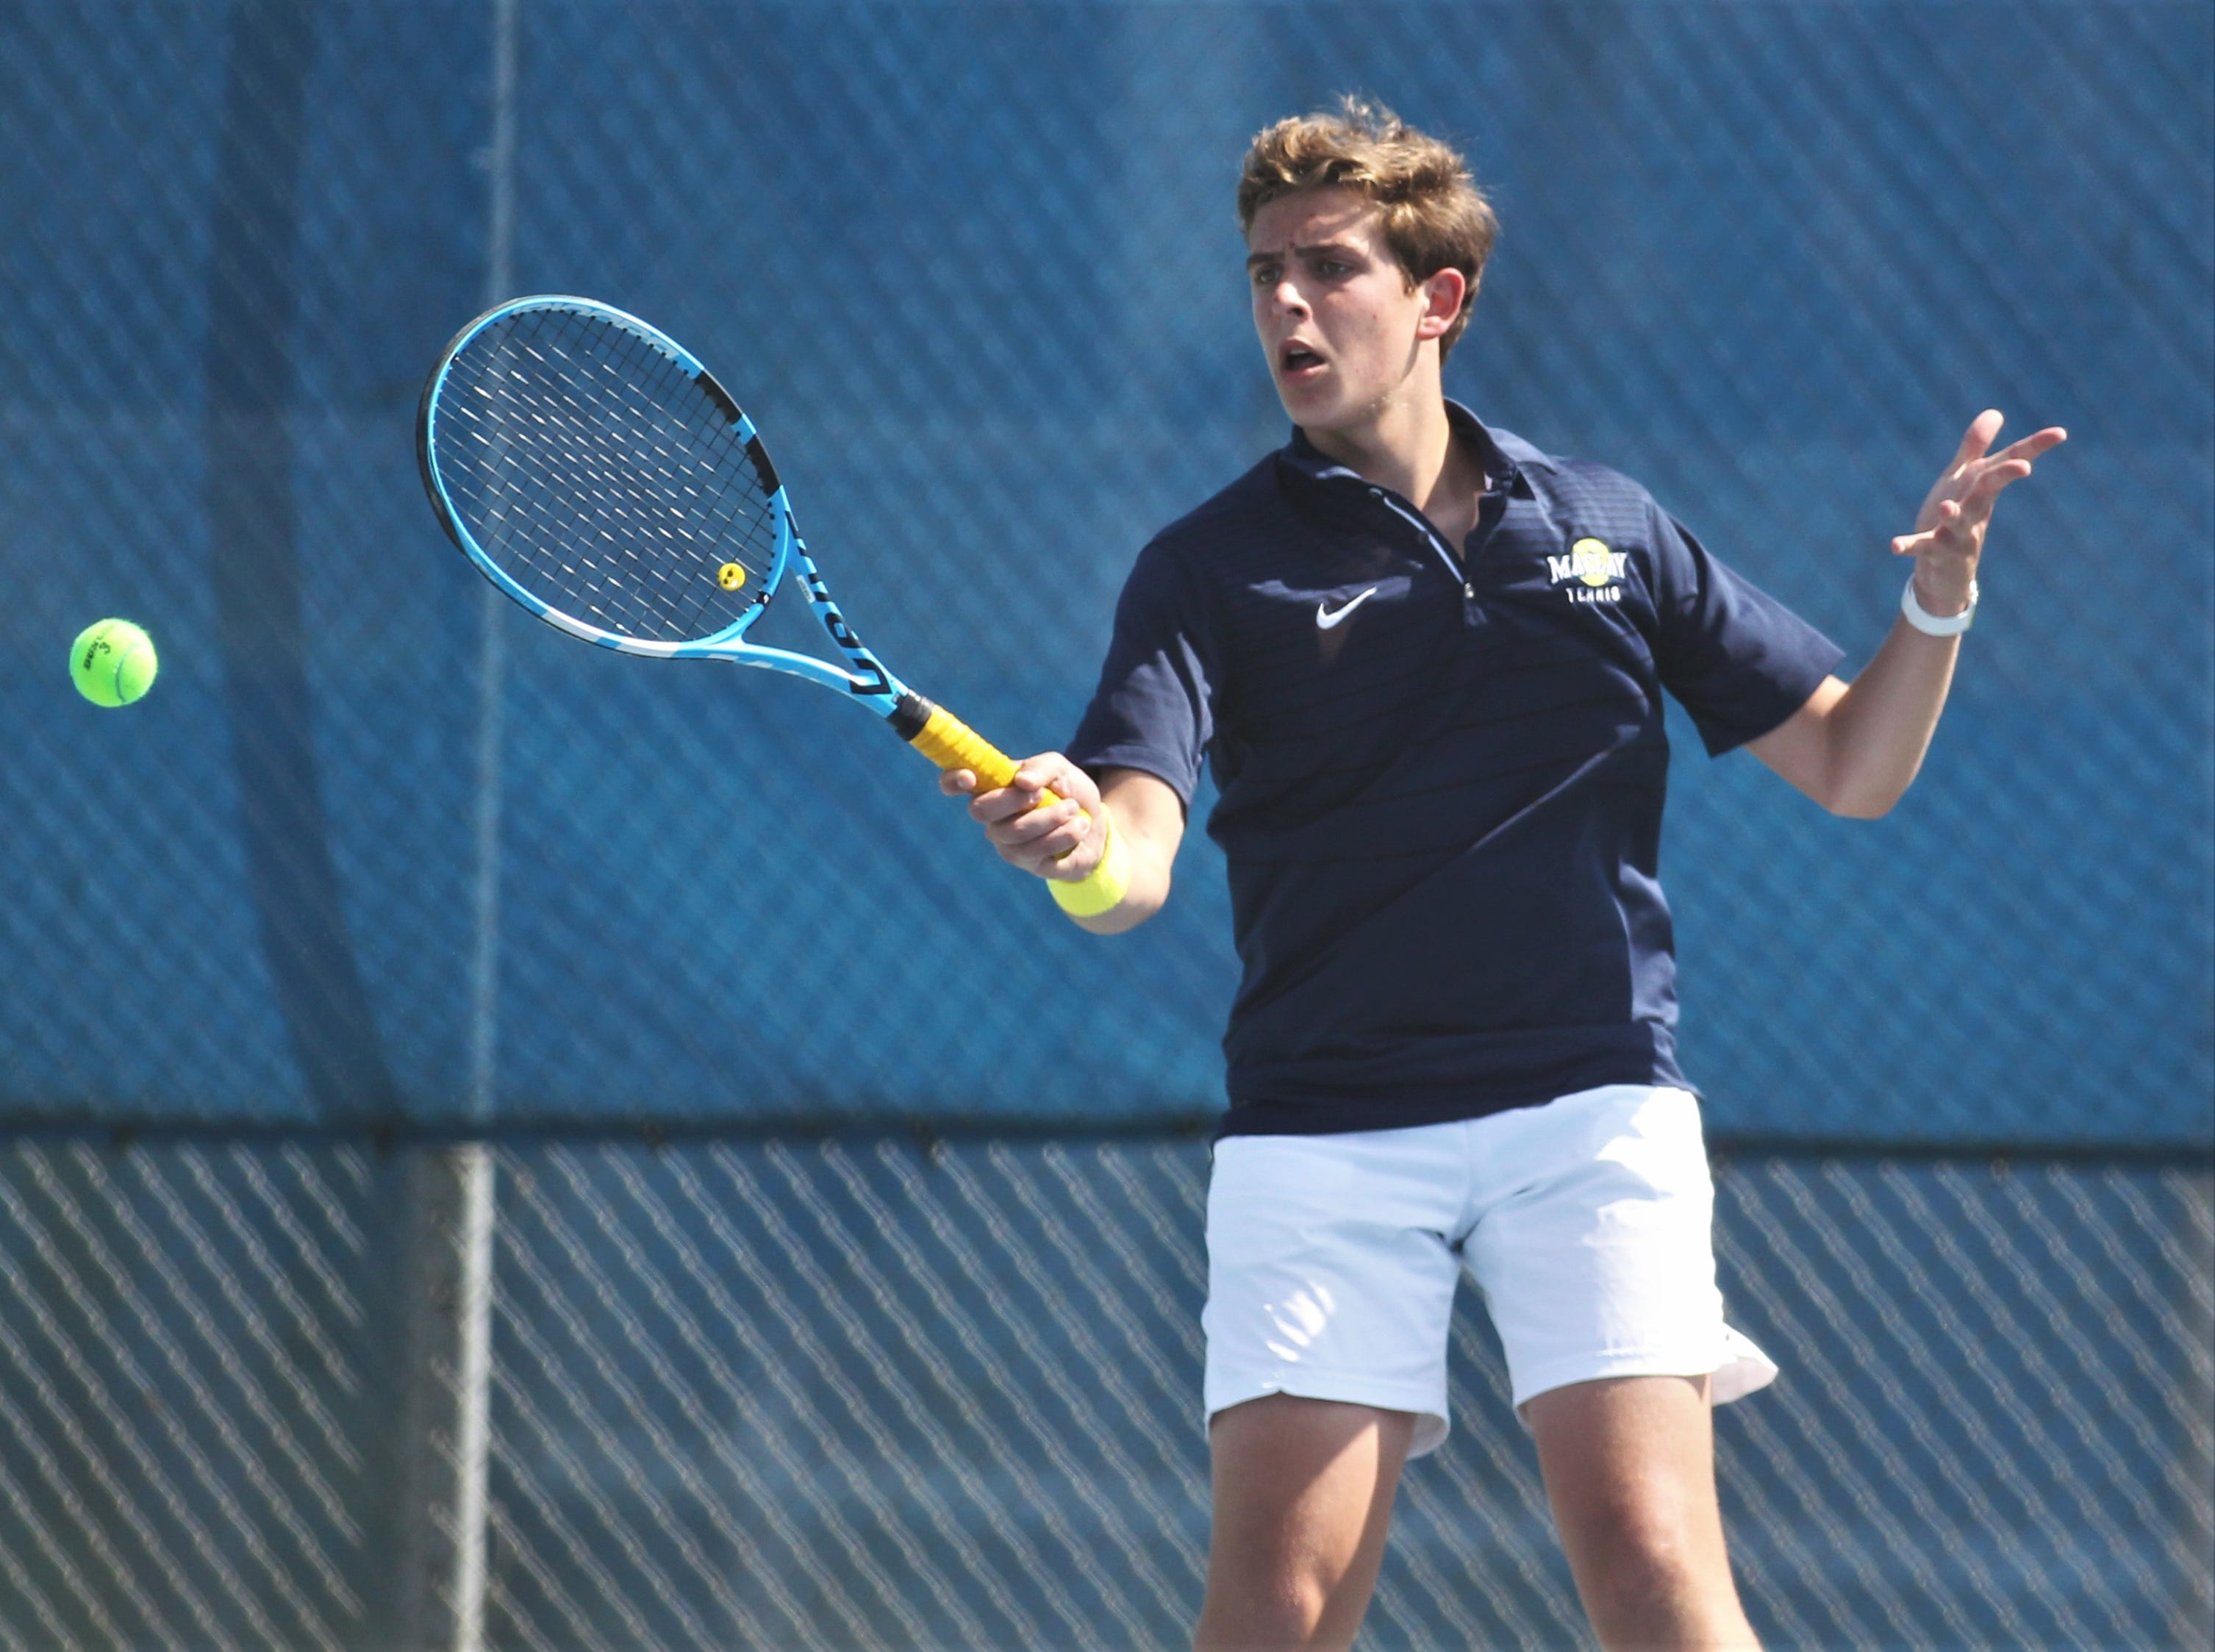 Maclay's Nick Cicchetti hits a forehand during the boys and girls tennis 2019 City Tournament at Tom Brown Park on March 12, 2019.